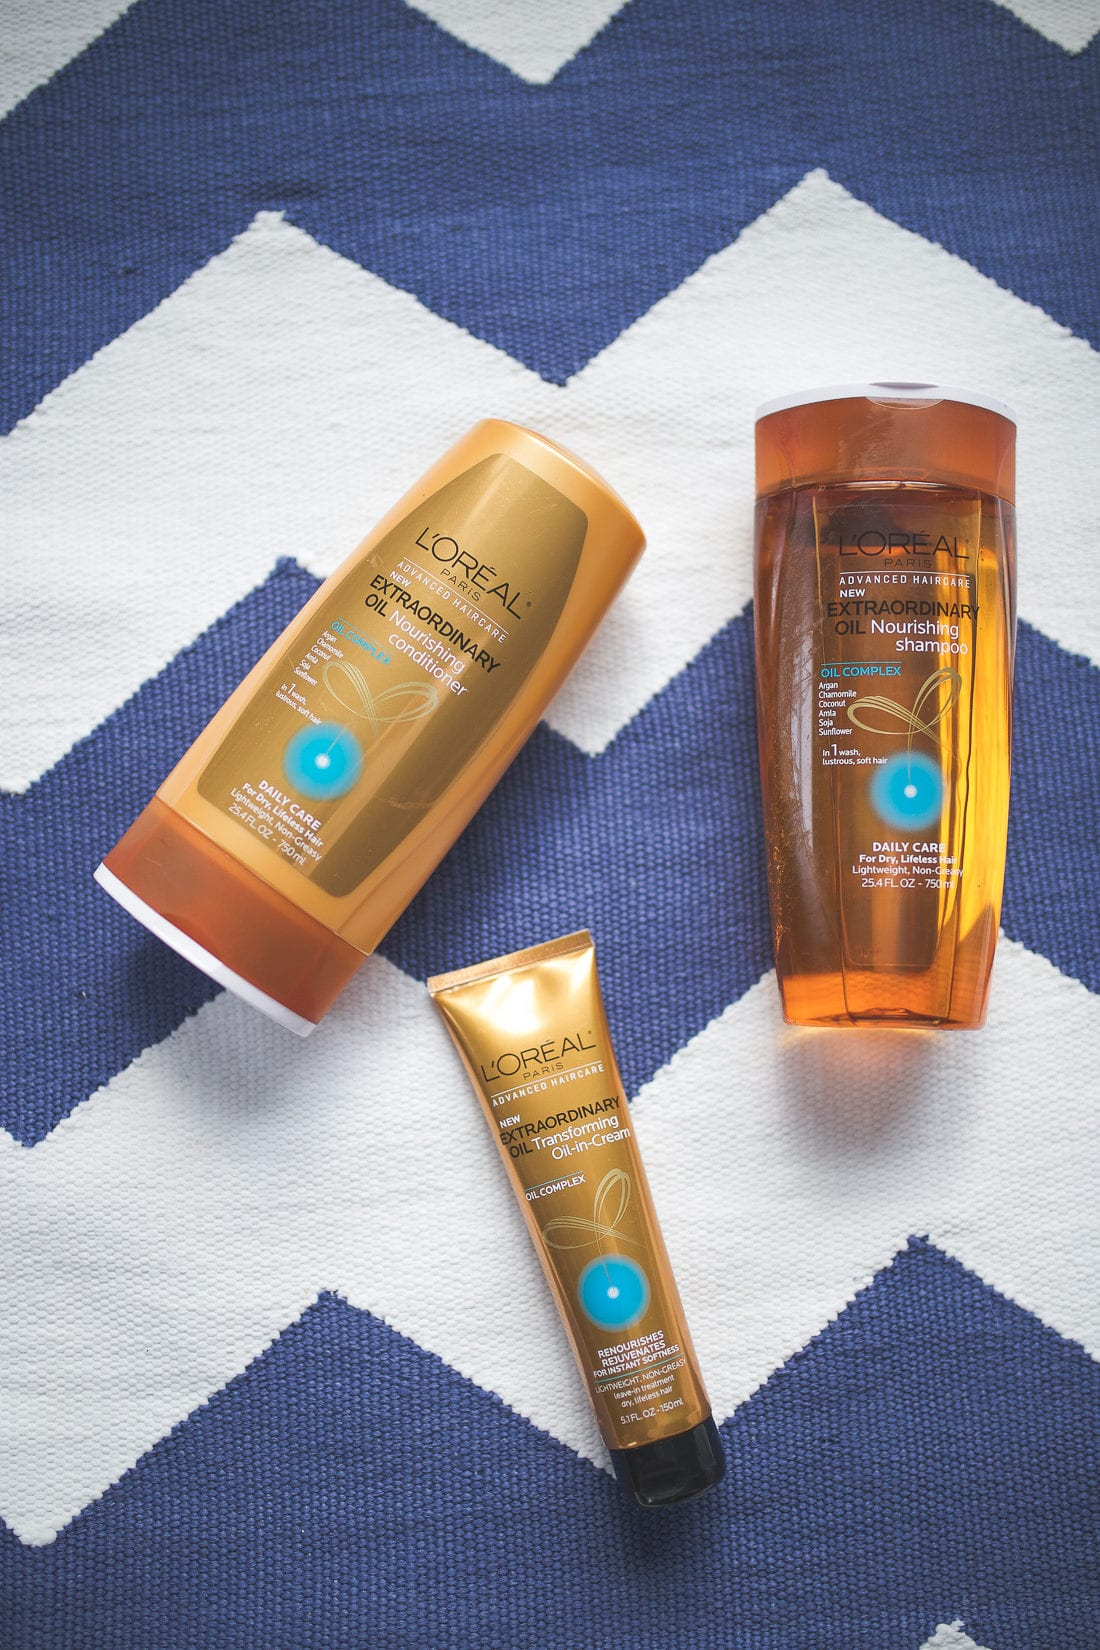 Advanced Haircare Extraordinary Oil Shampoo & conditioner